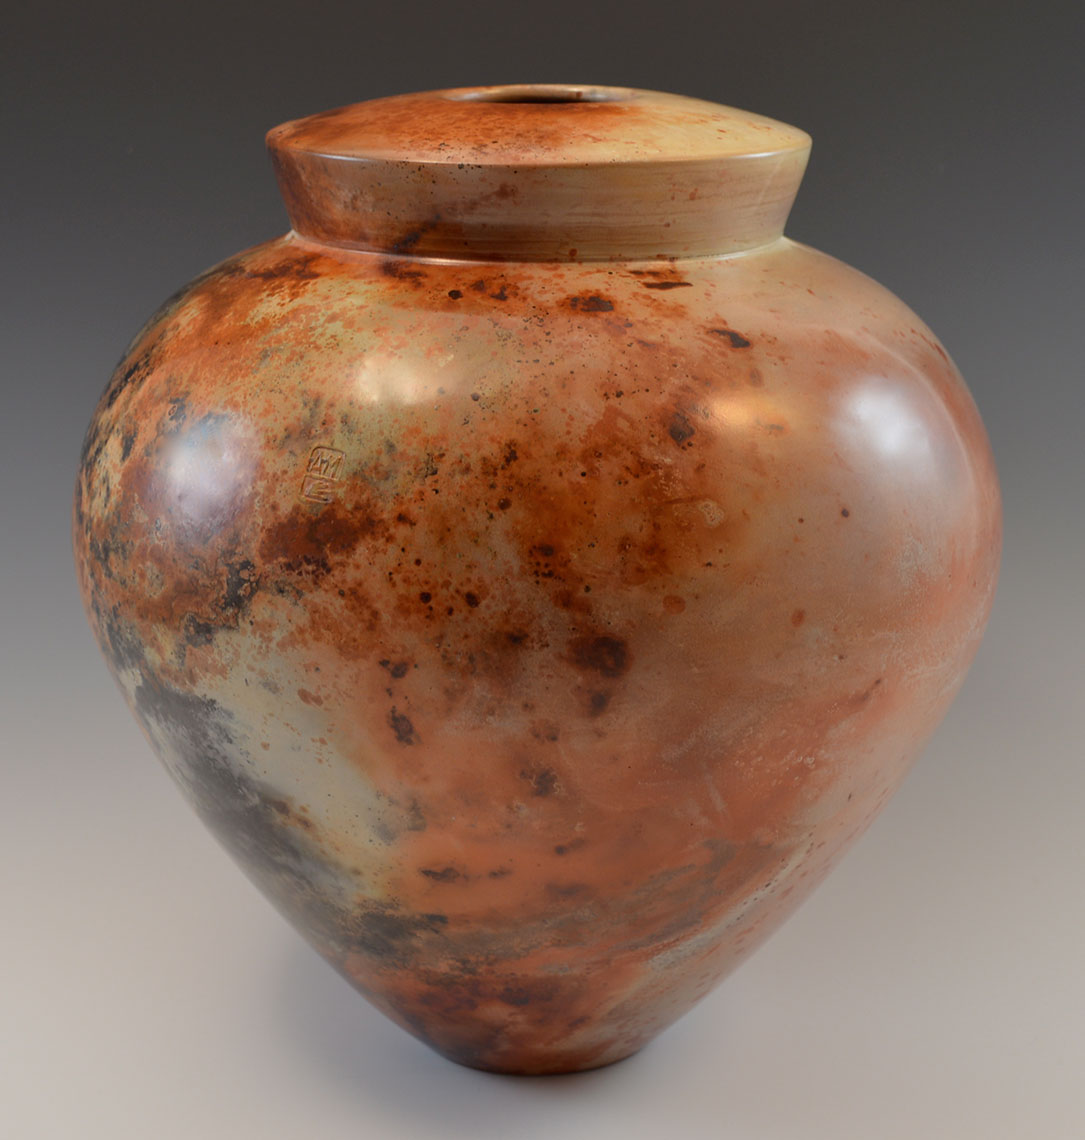 Saggar-fired white earthenware clay